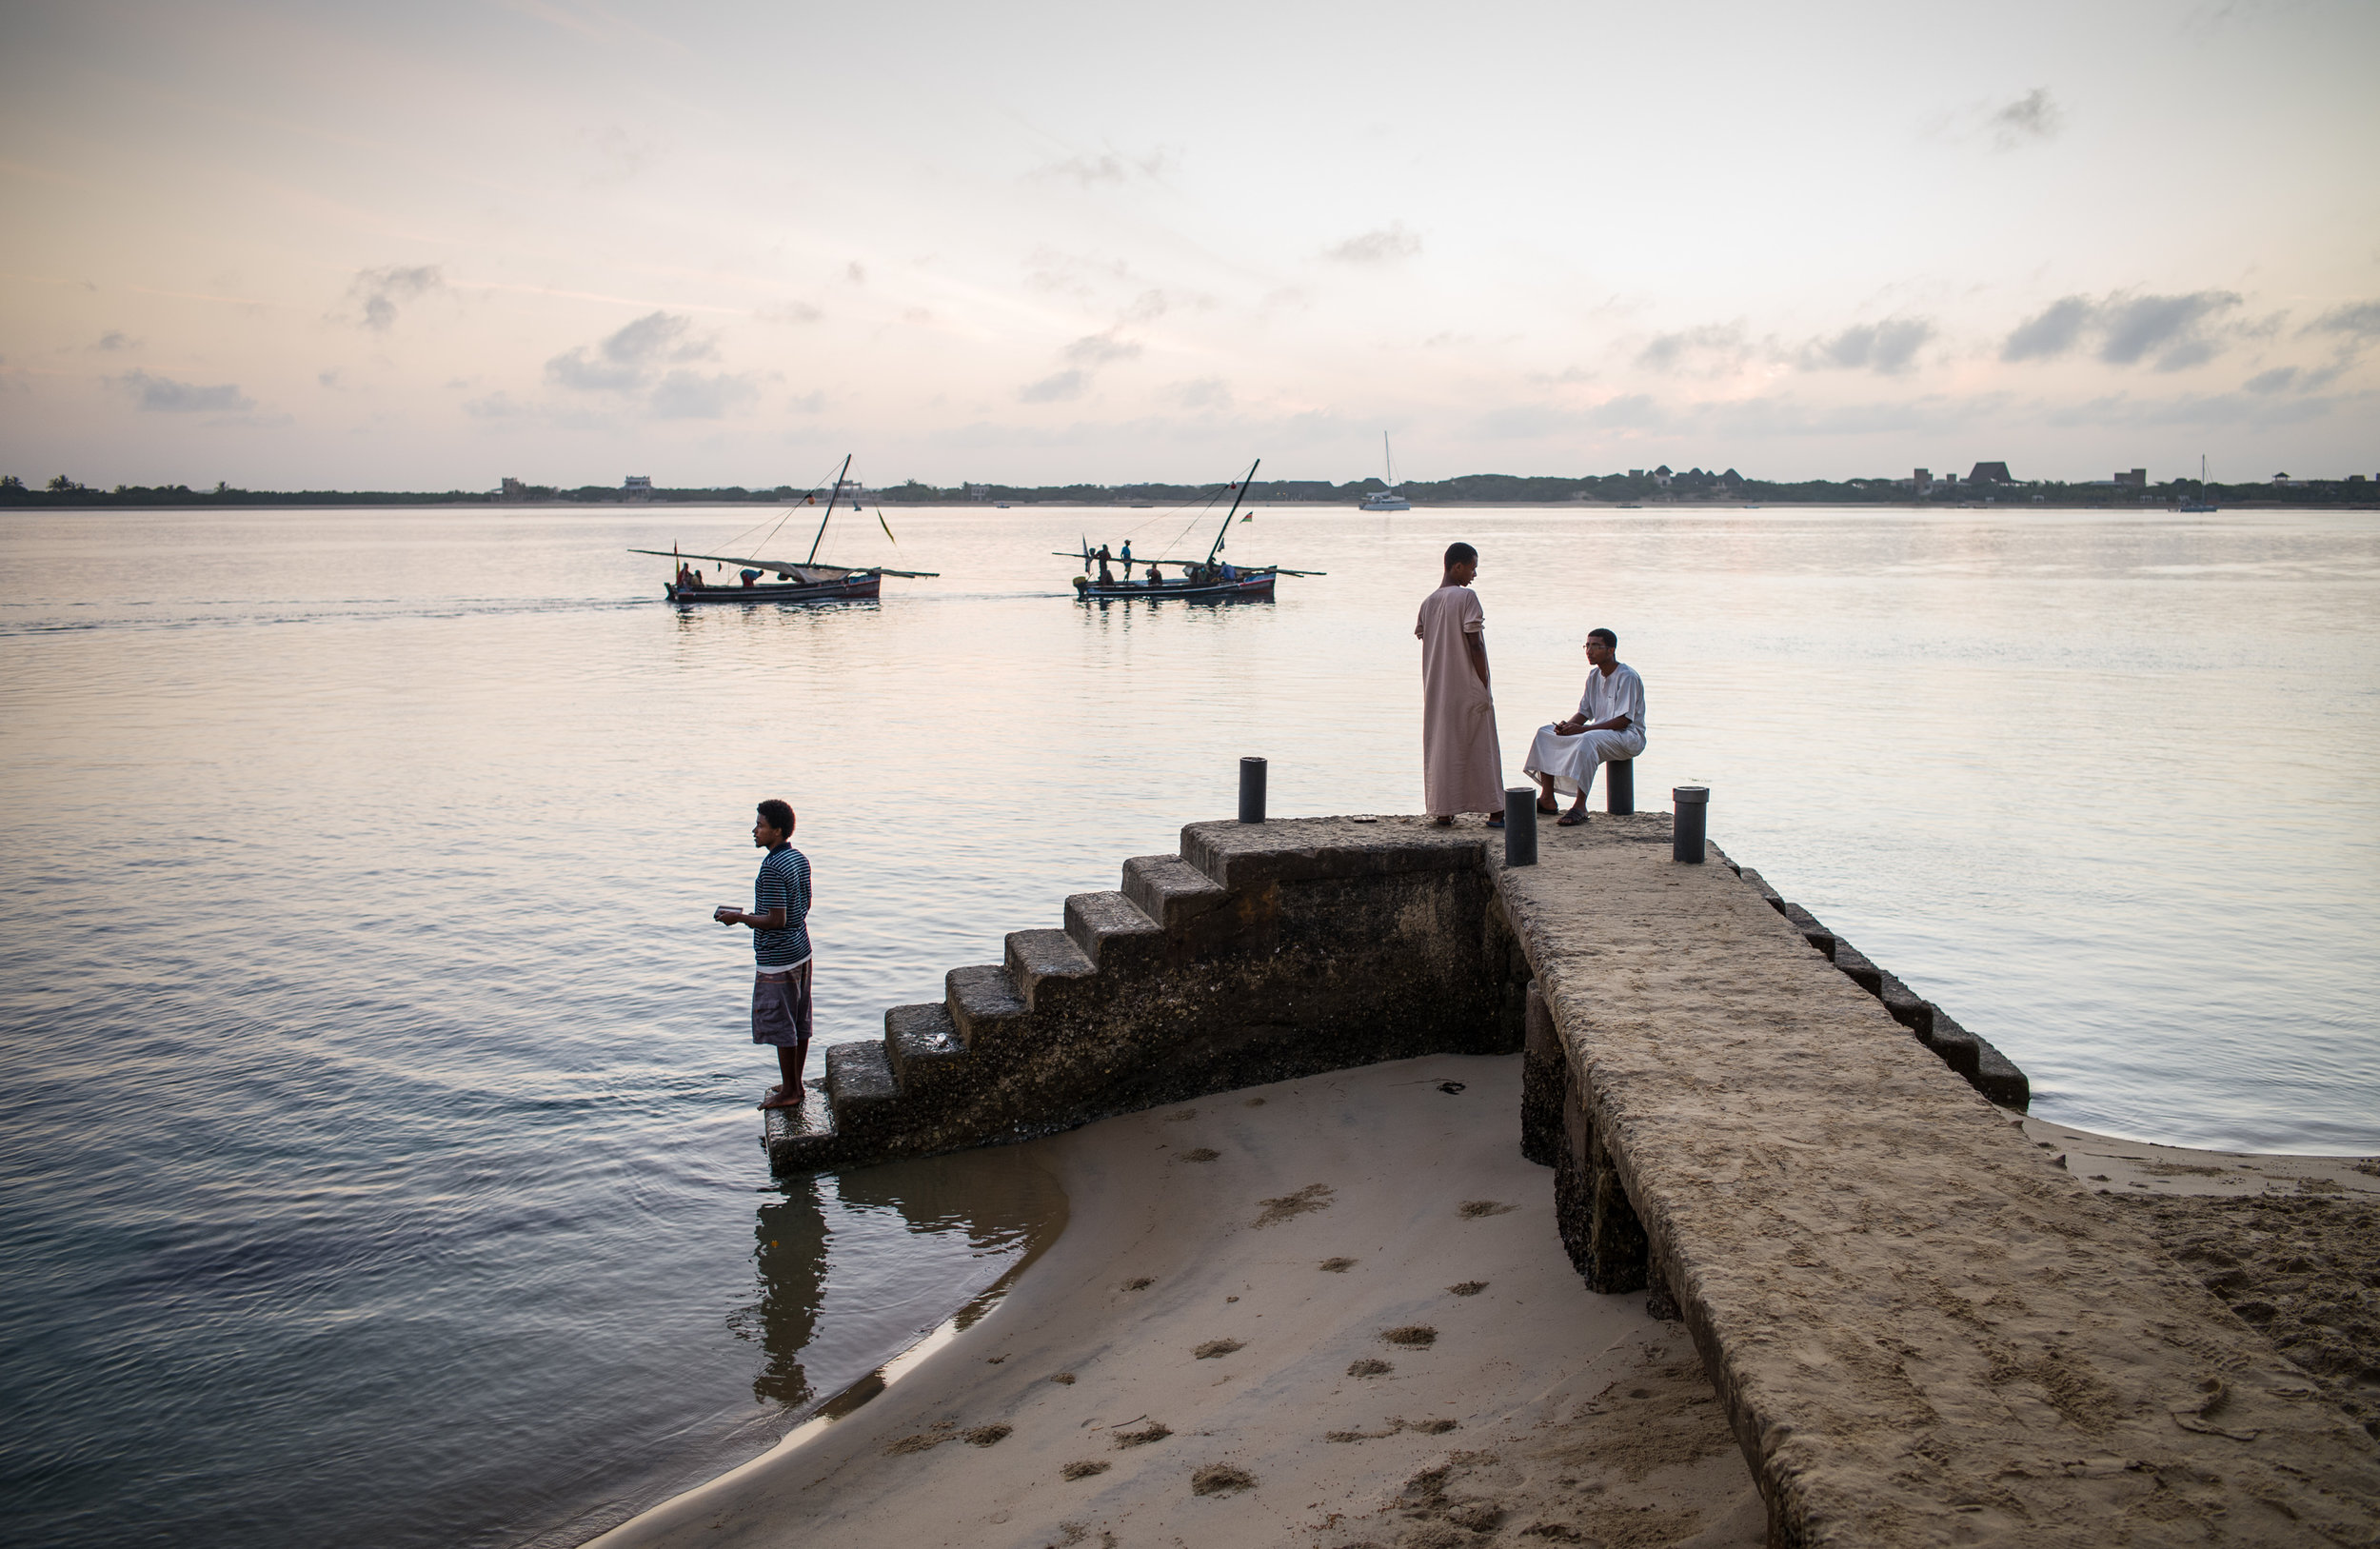 Young men linger on Shella pier on Lamu Island in Kenya as fishermen head out to sea aboard their jahazis – a type of dhow sailing vessel